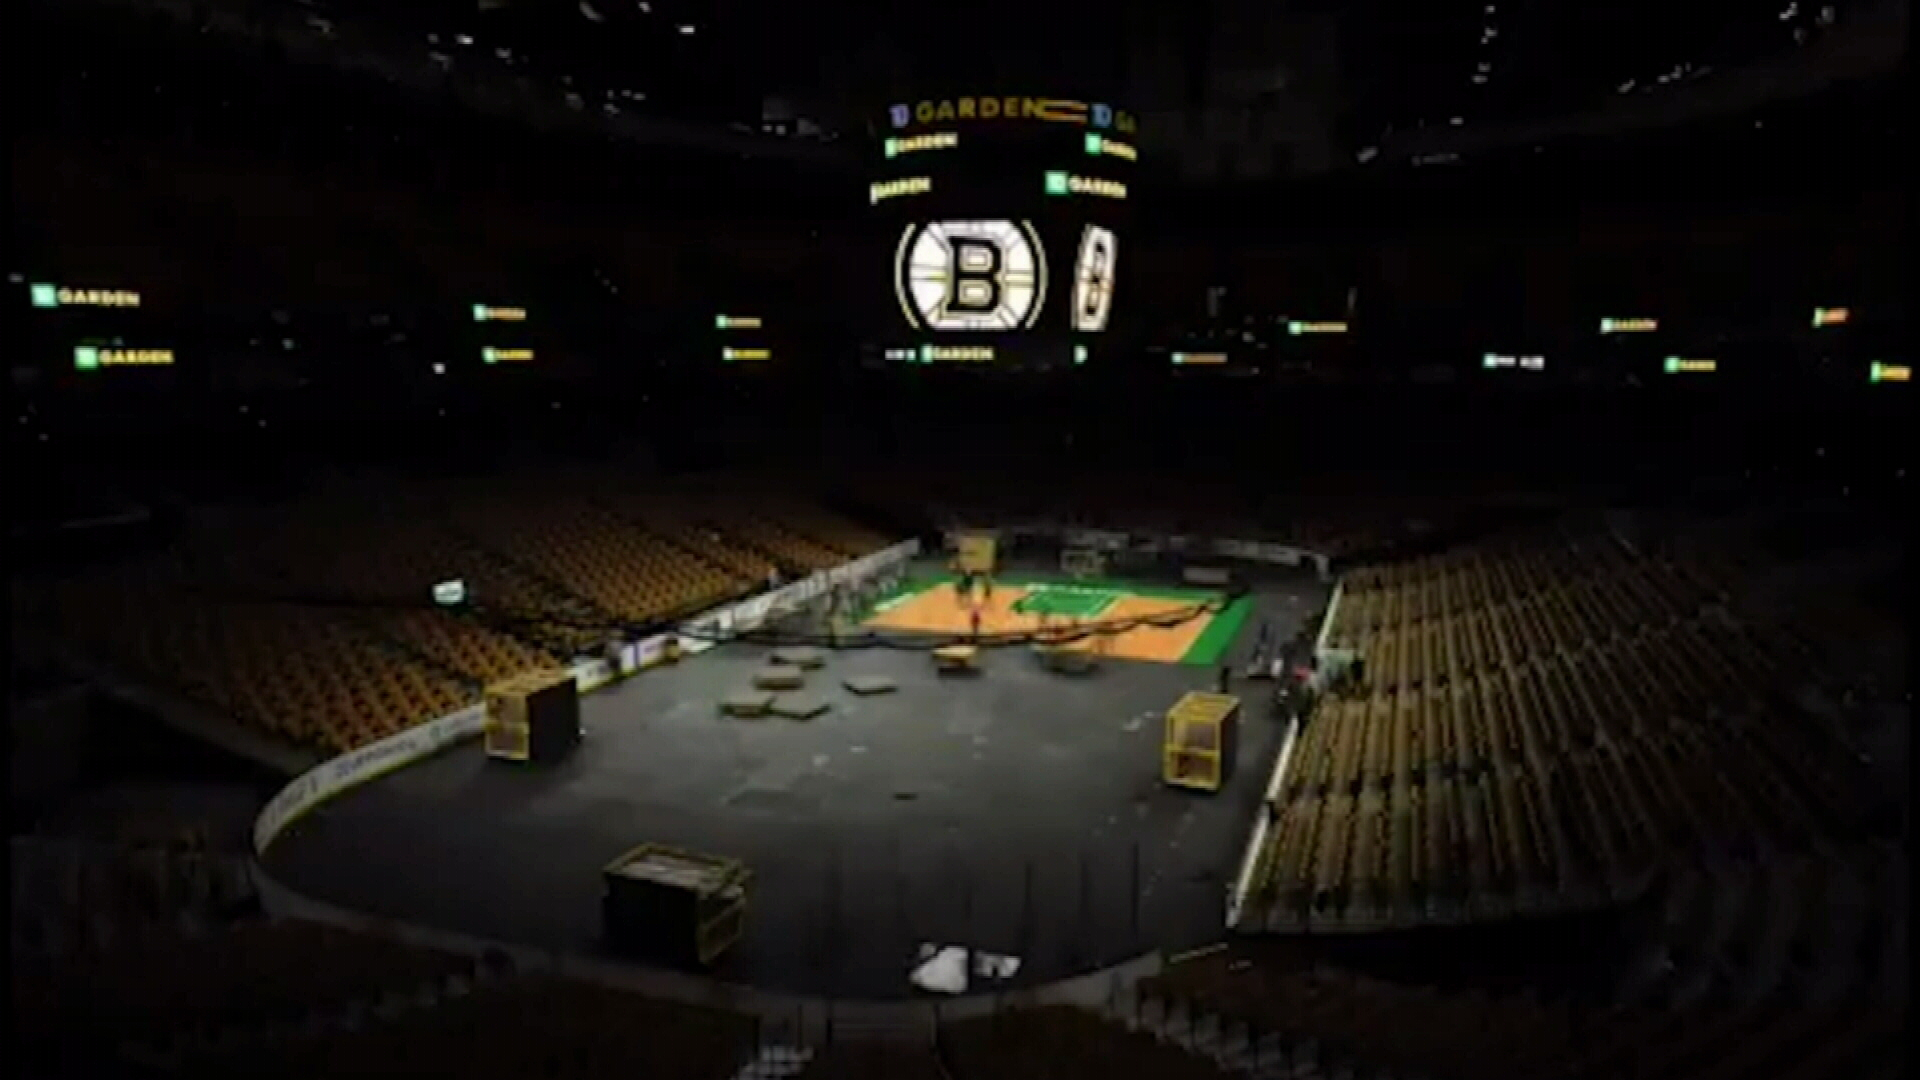 Boston Garden's amazing transformation